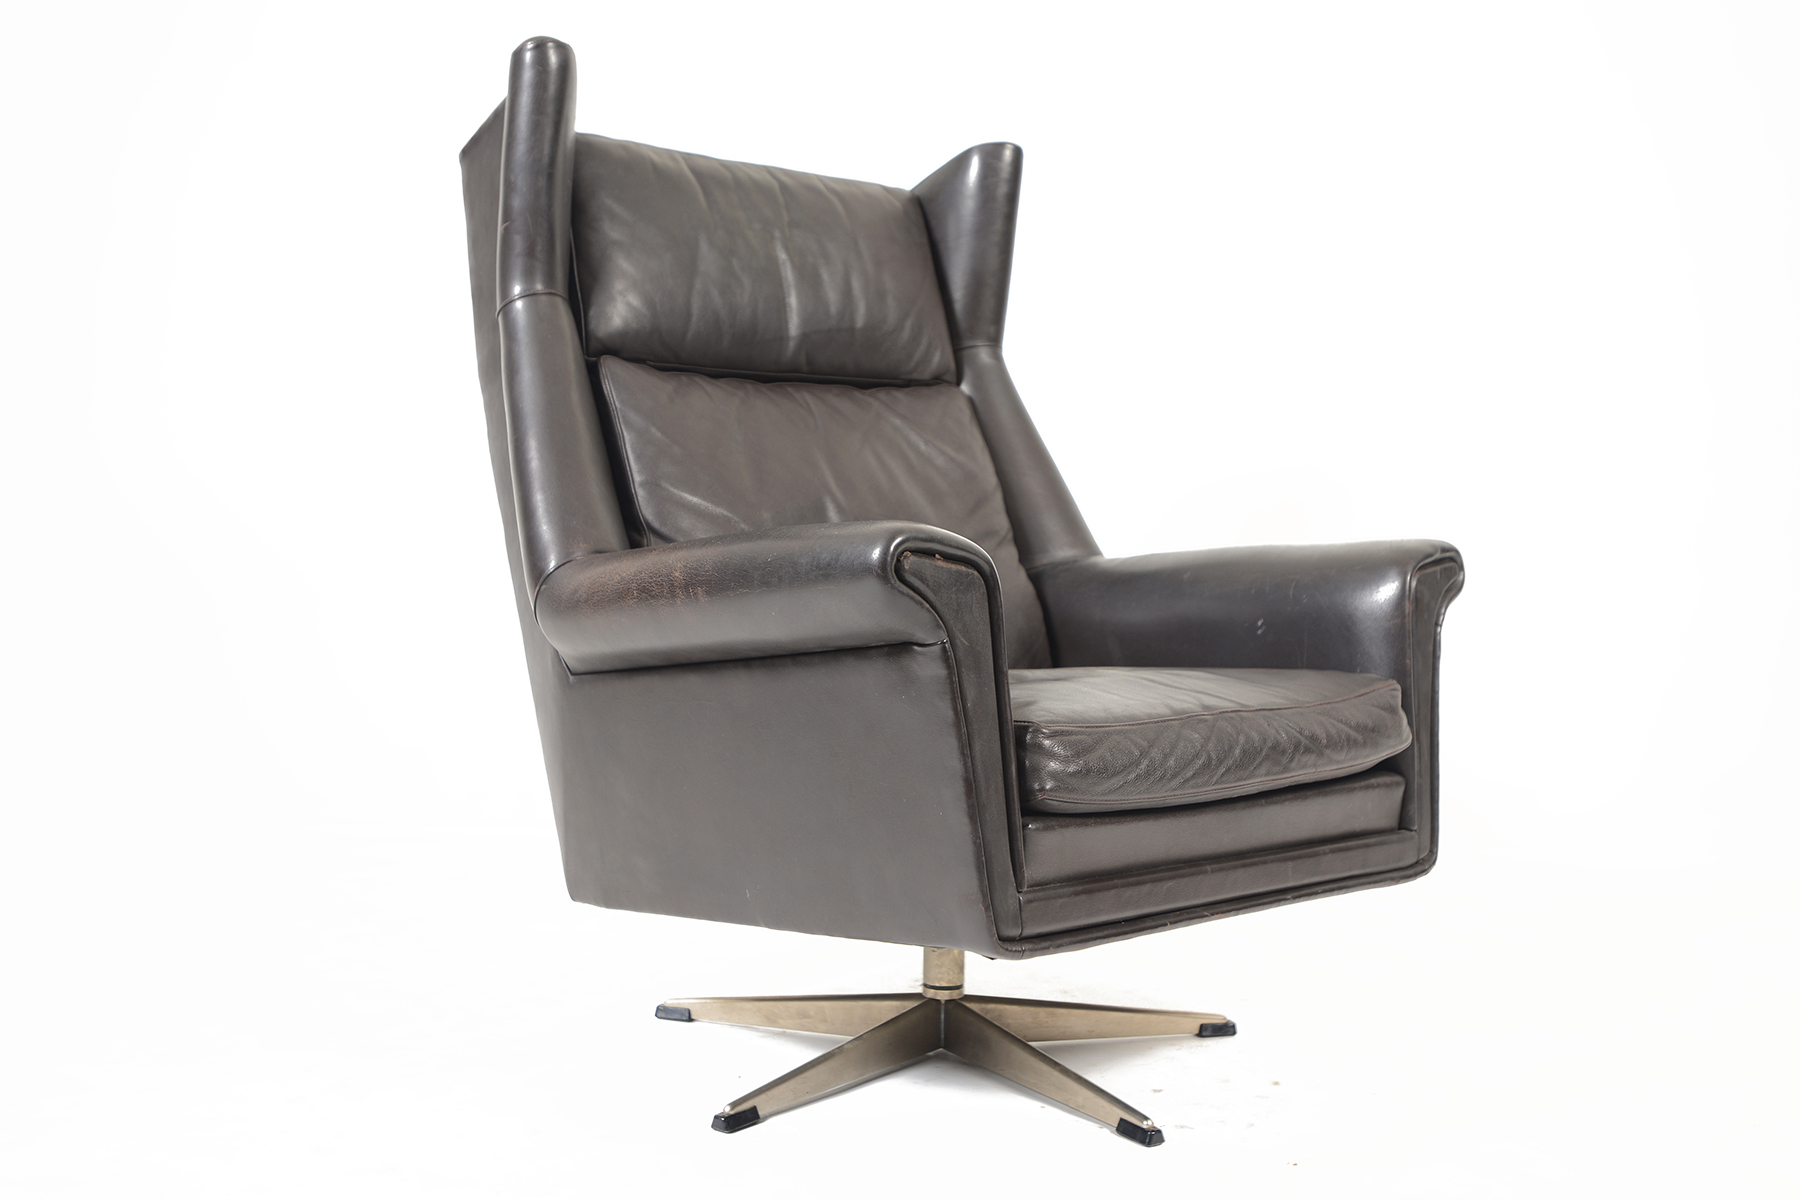 Black Leather Lounge Chair Danish Modern Black Leather Highback Swivel Lounge Chair Mid